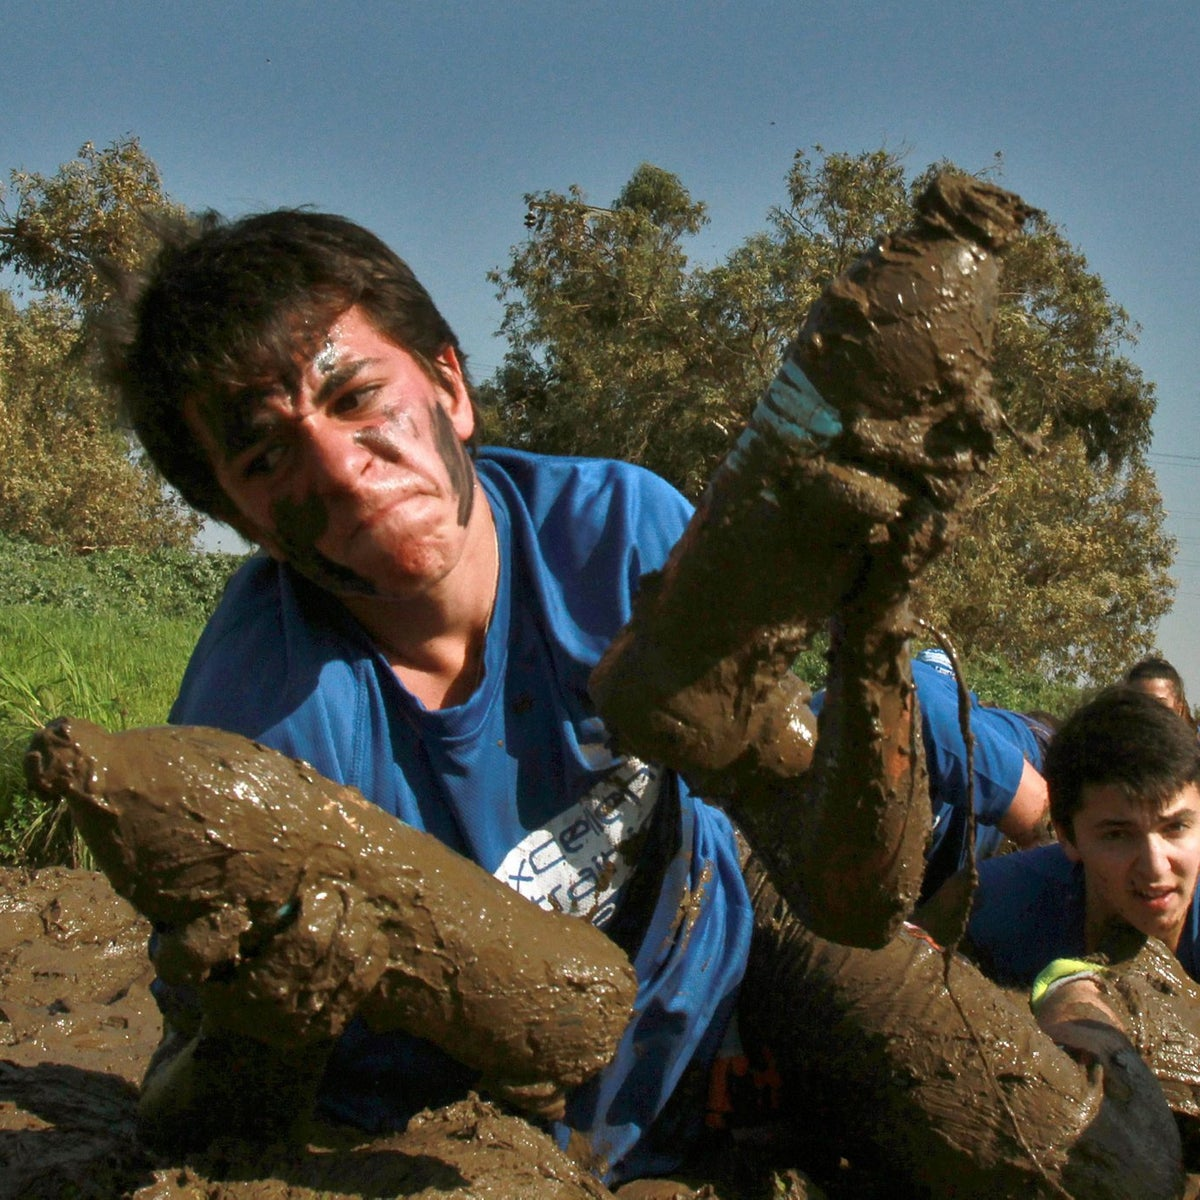 Israeli youths crawl in the mud as they take part in a training session for the Israeli Elite Army Units in the city of Herzliya, near Tel Aviv, on February 19, 2016.